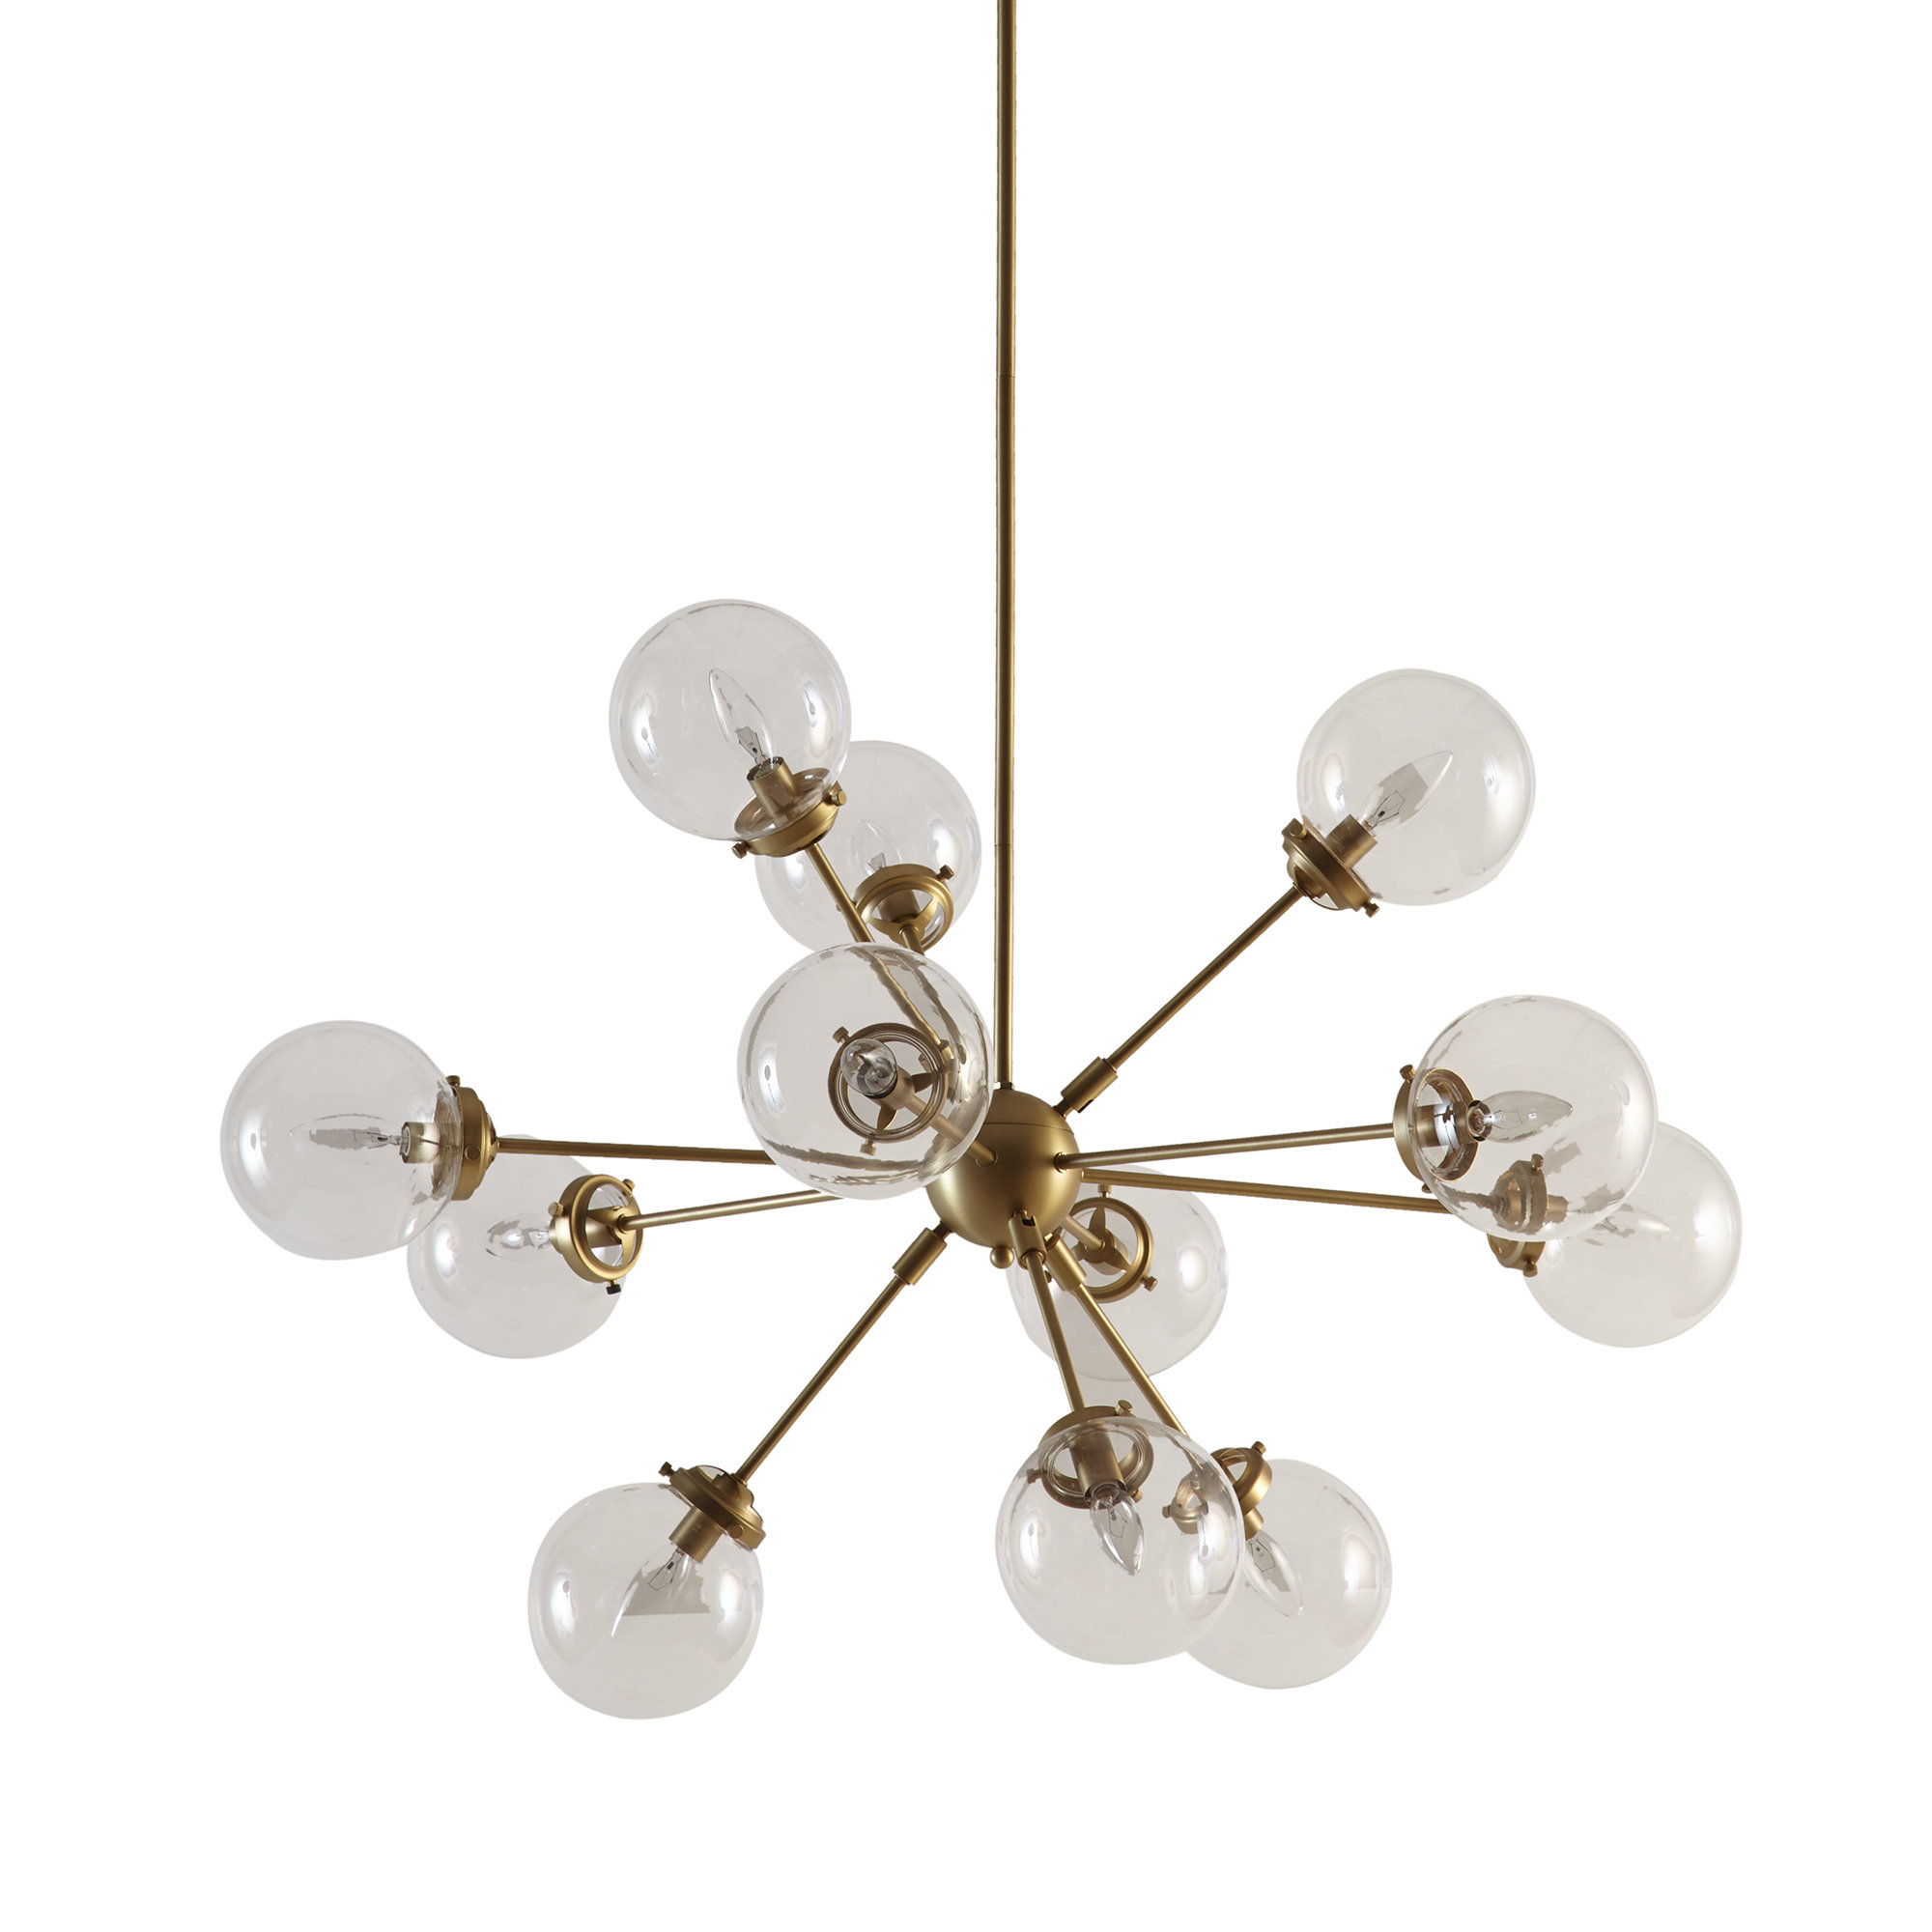 Modern Rustic Interiors Asher 12 Light Sputnik Chandelier In 2020 Defreitas 18 Light Sputnik Chandeliers (Gallery 12 of 20)